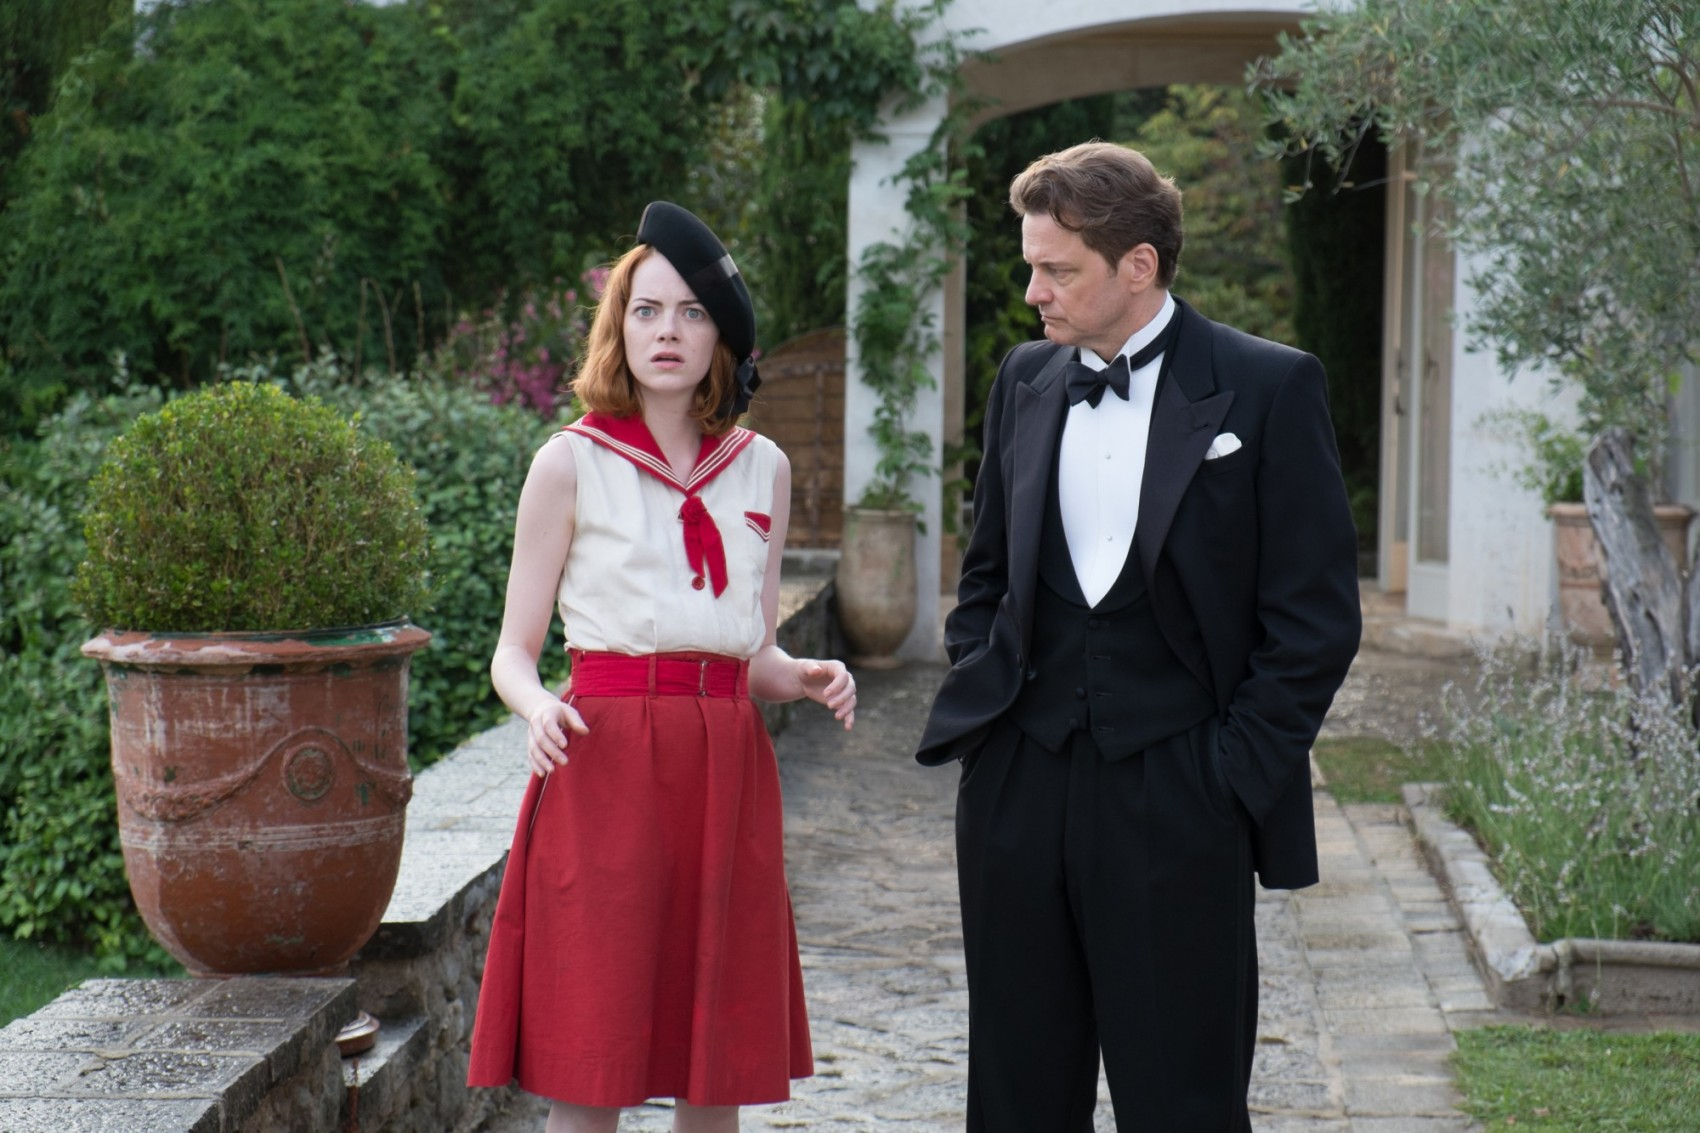 Woody Allen Colin Firth Emma Stone Magic in the moonlight